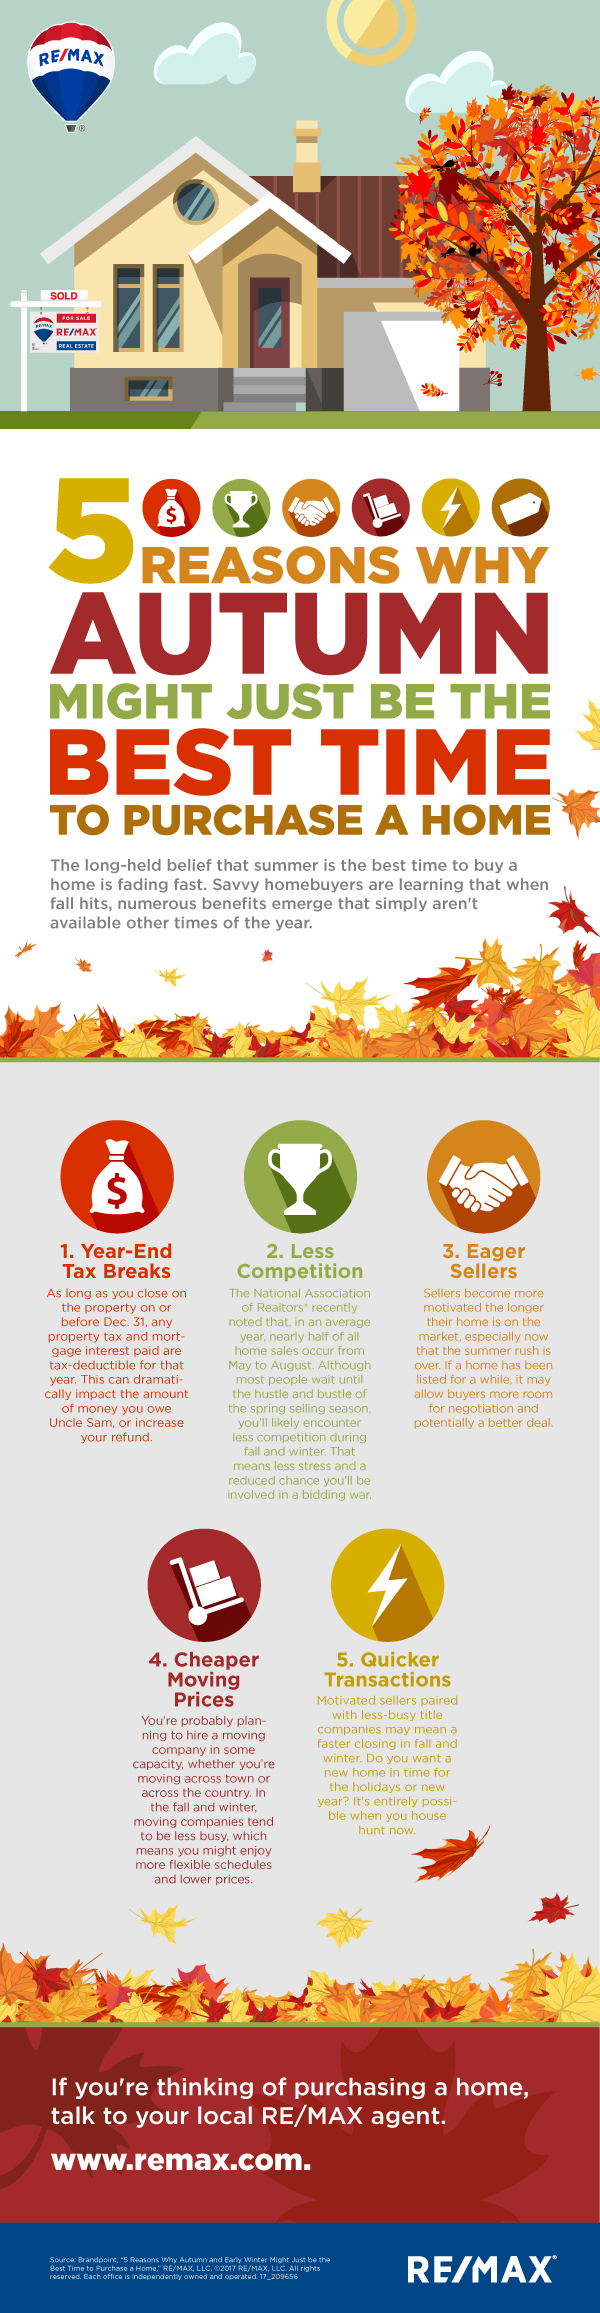 17_209656_Fall_Infographic_Autumn_Homebuyer_600.jpg